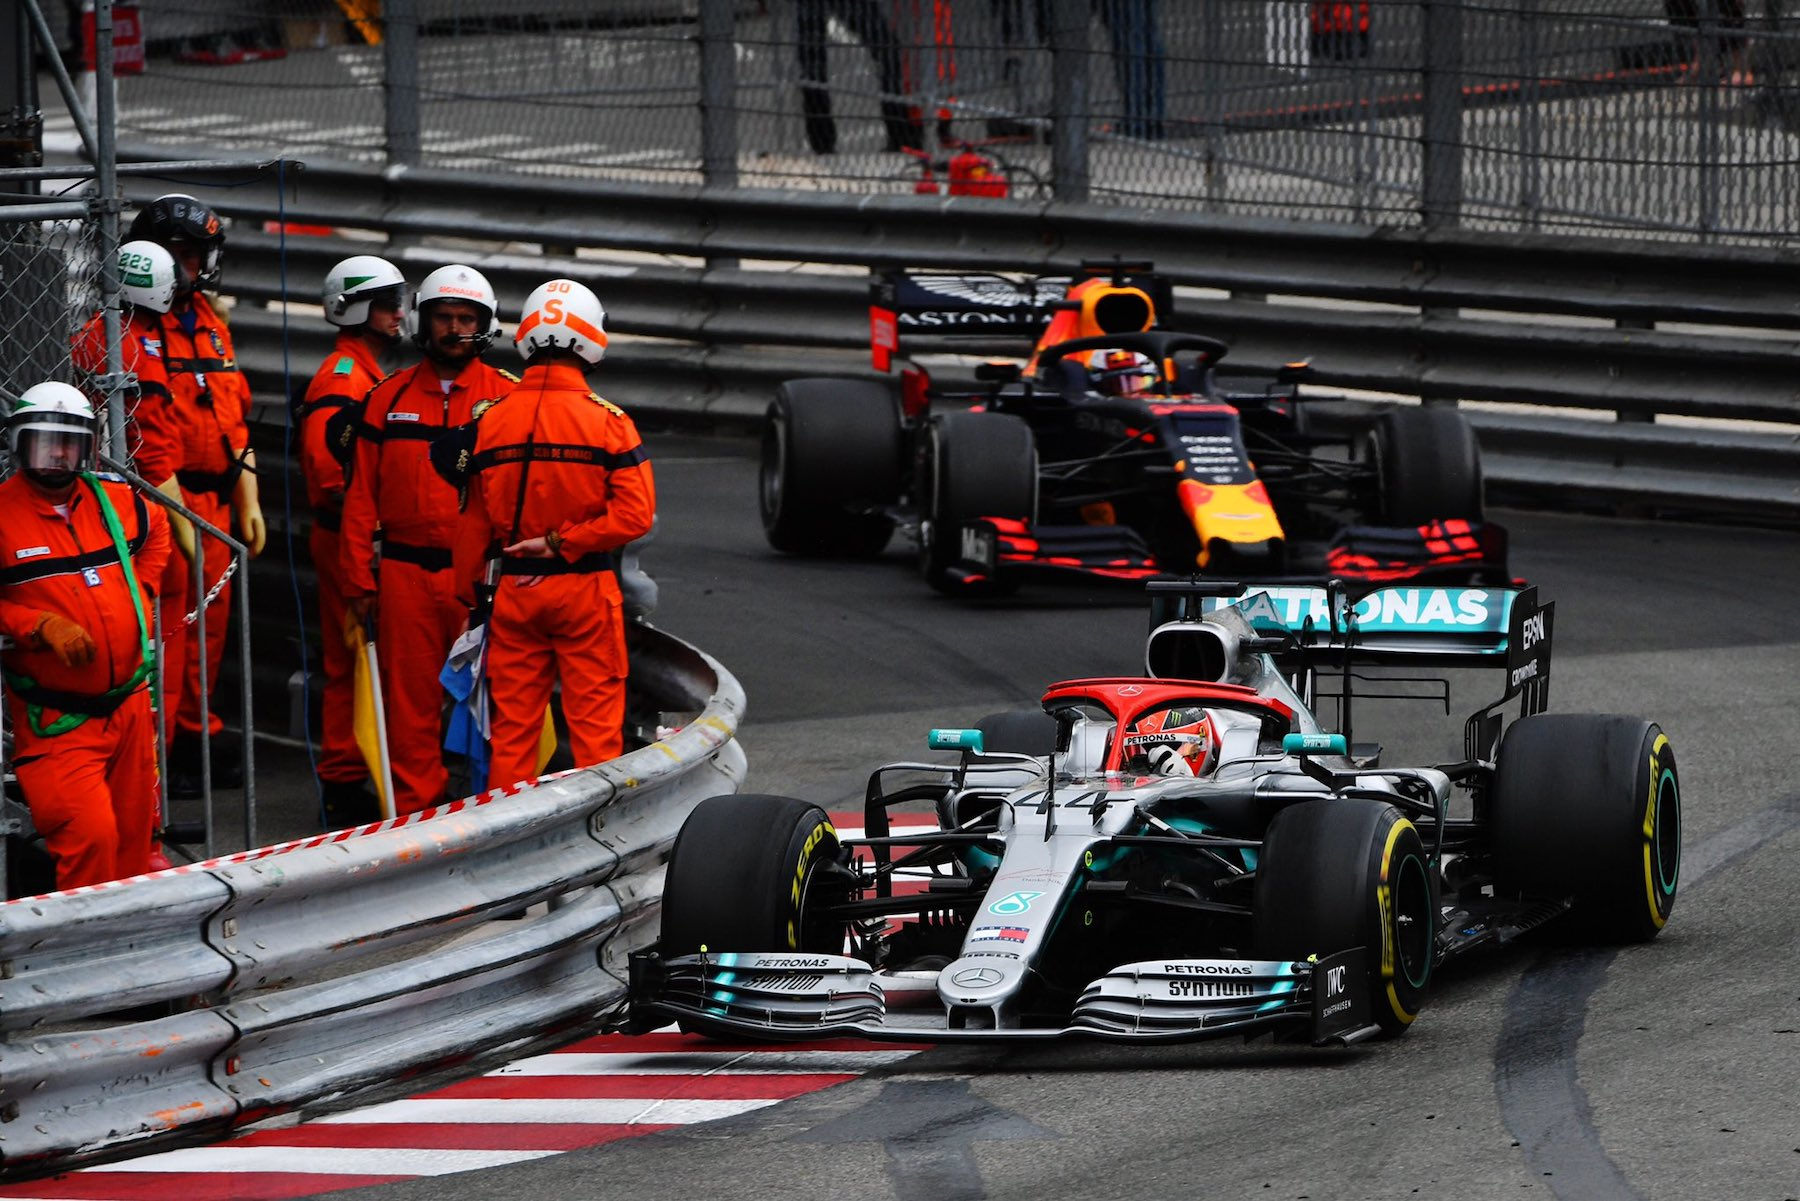 3 2019 Monaco GP SUNDAY 14.jpg